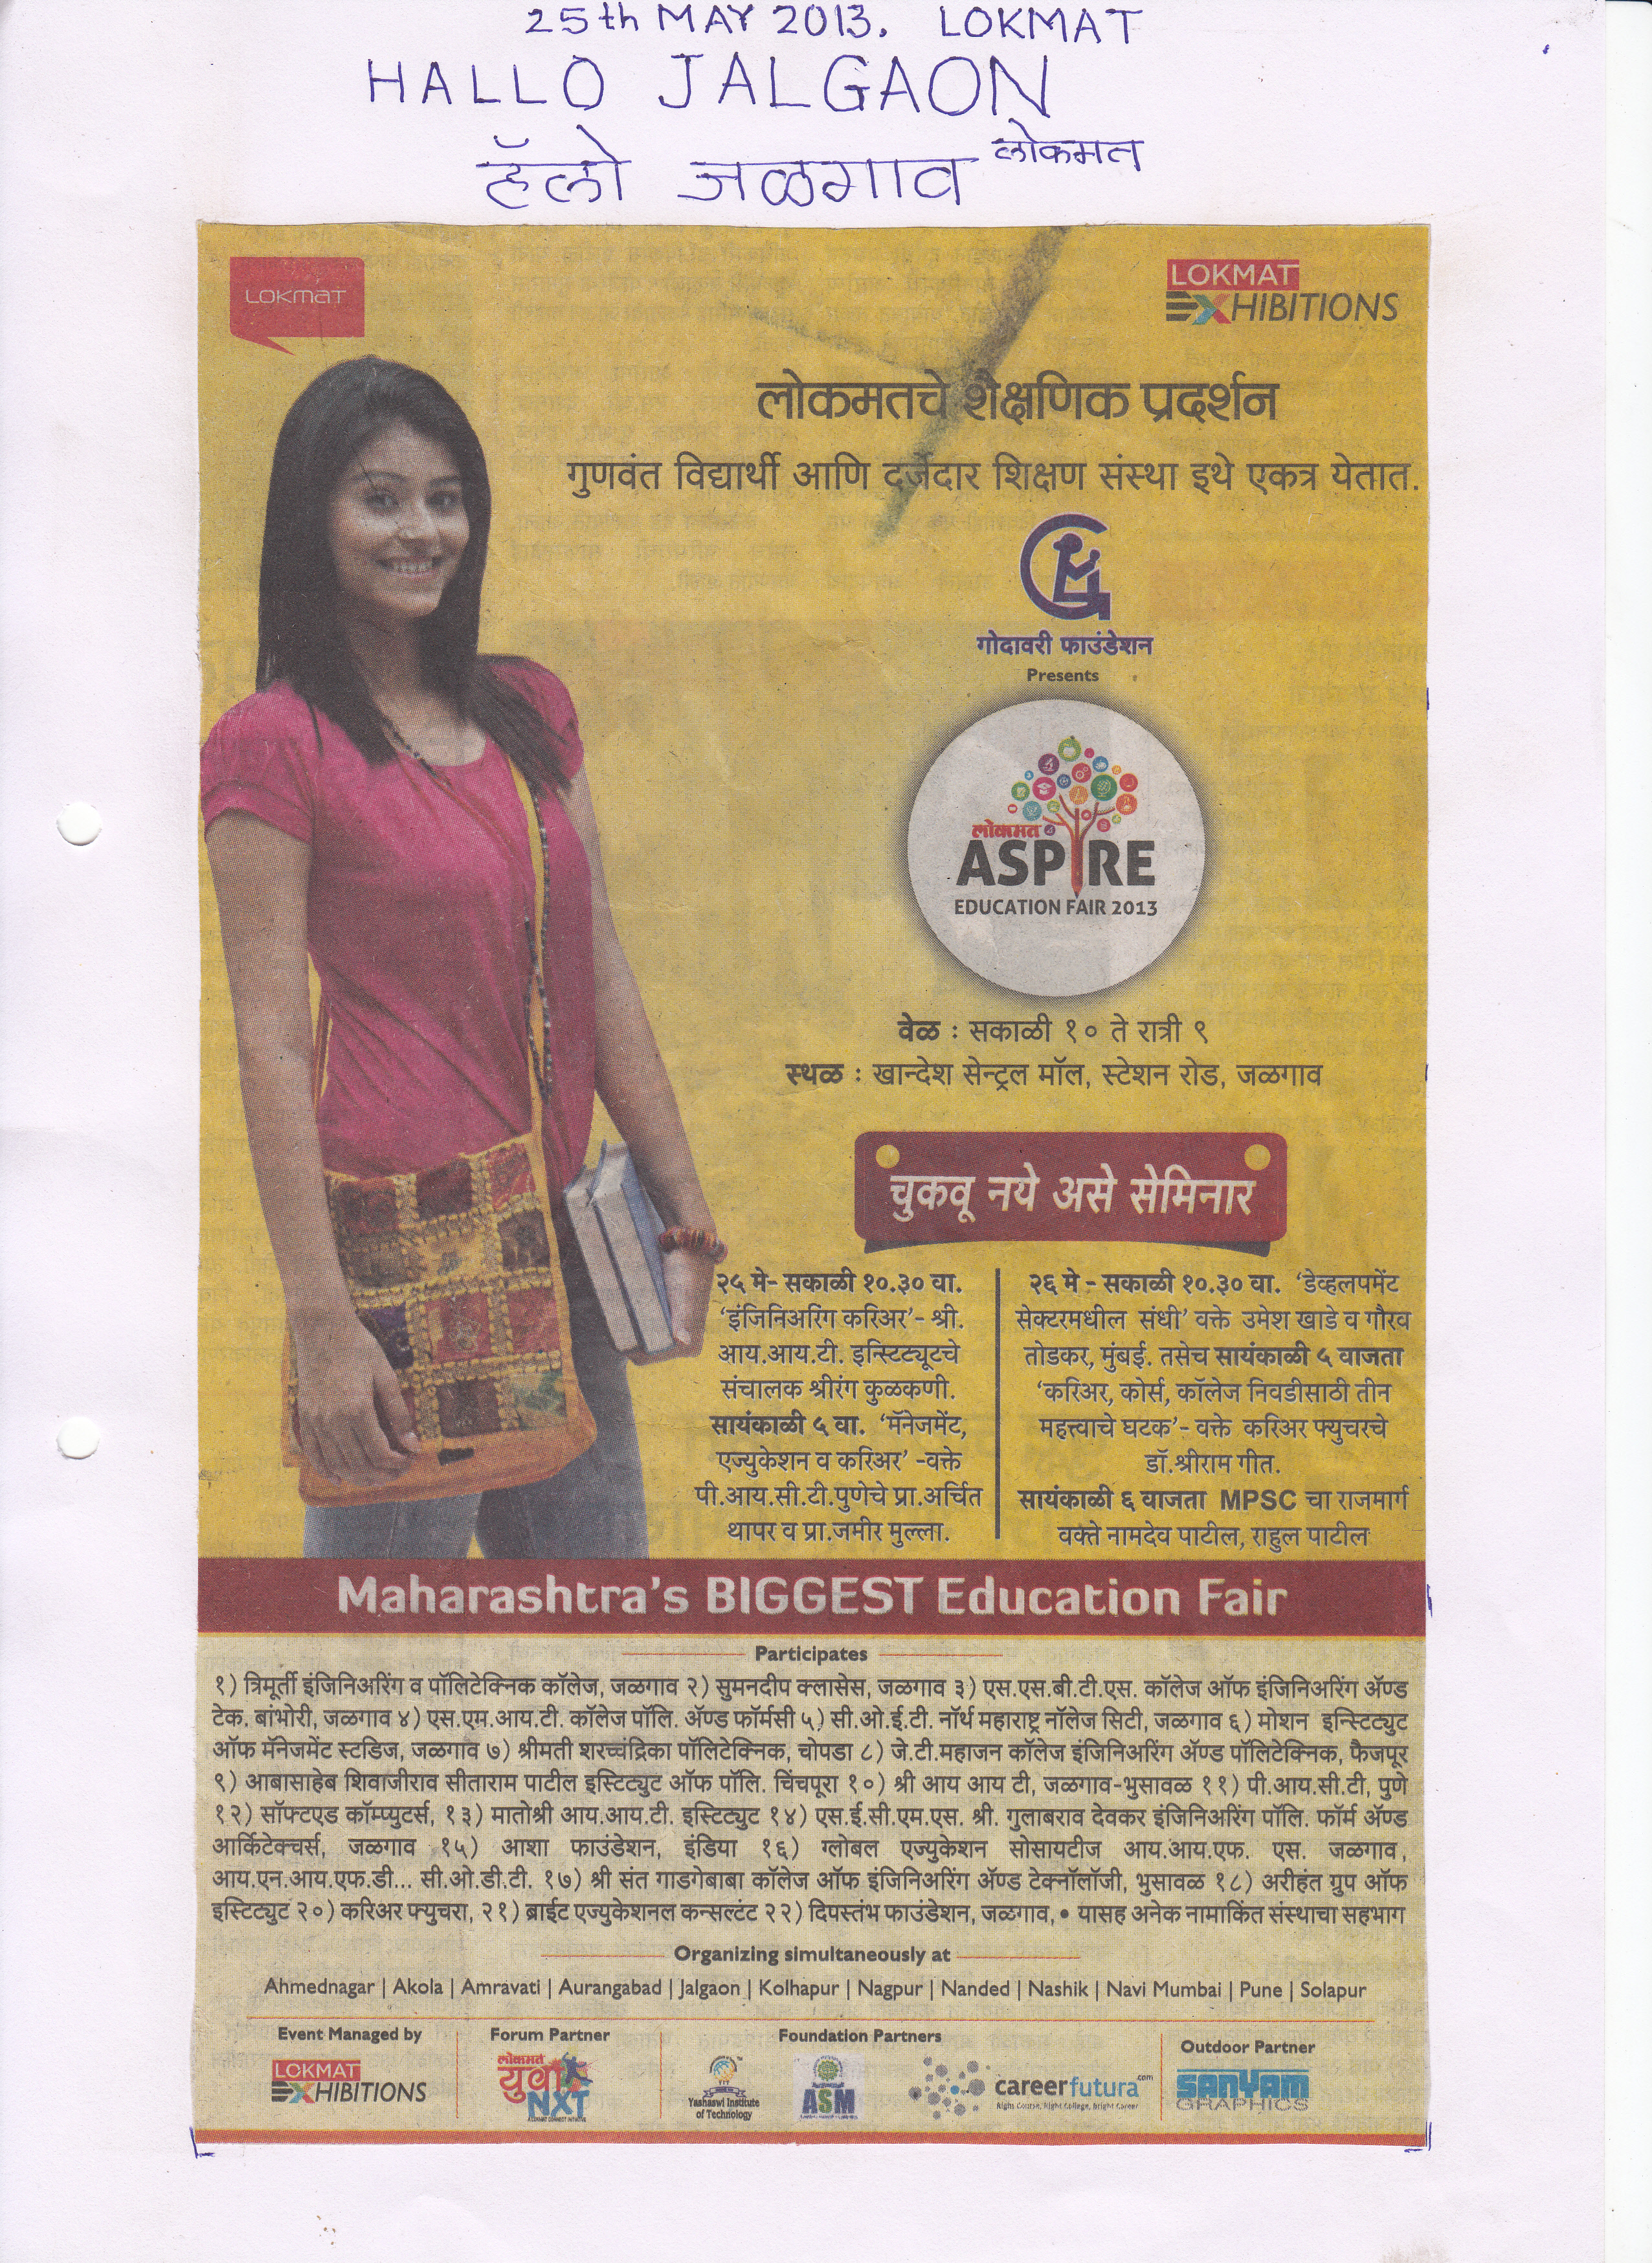 Lokmat Education Fair 2013 Jalgaon